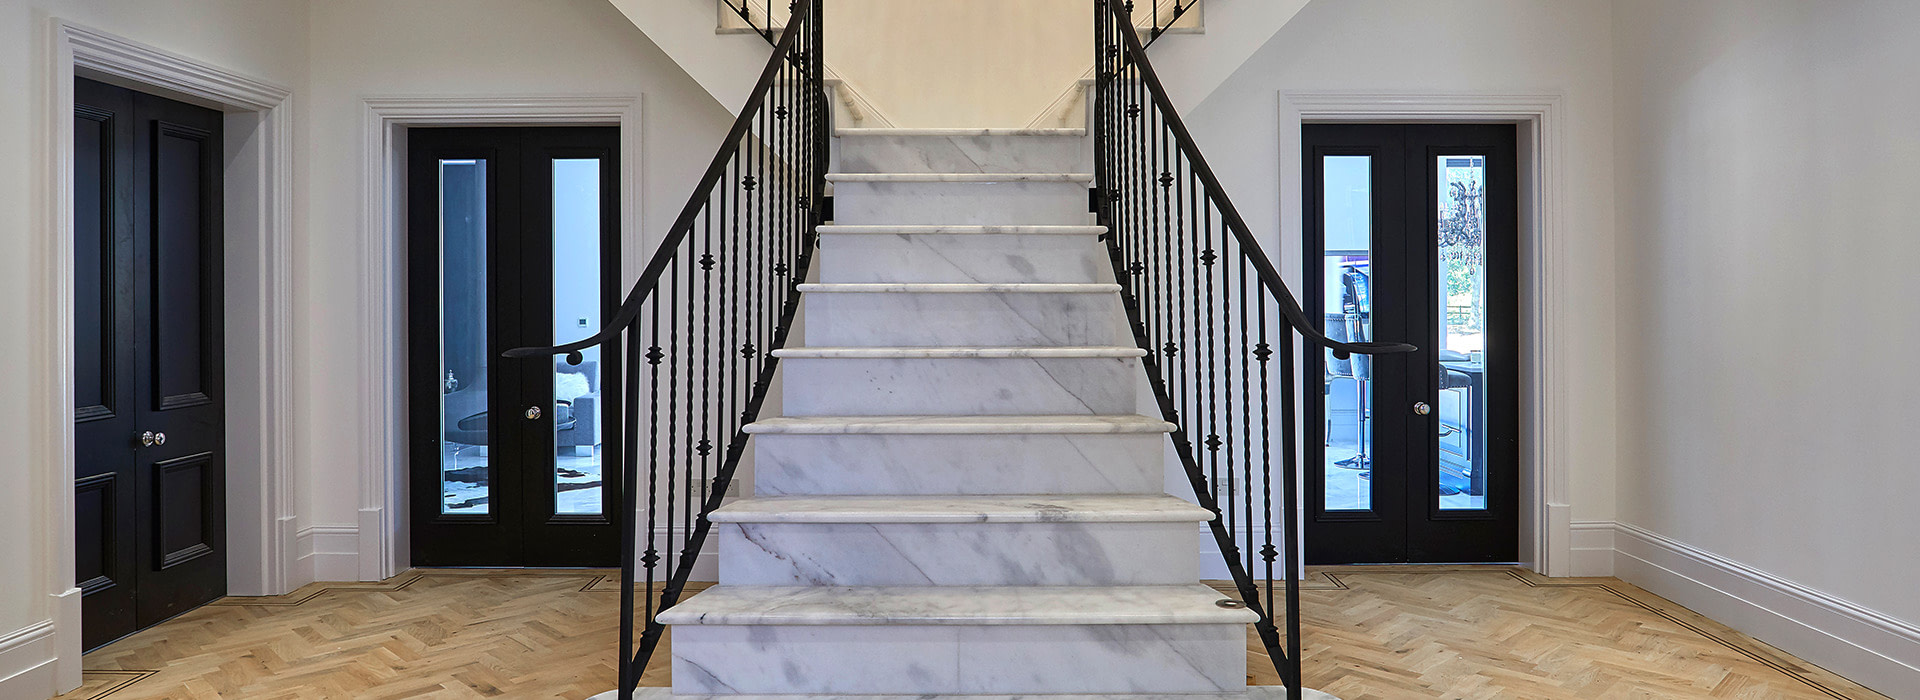 Marble staircase with oak parquet hallway flooring